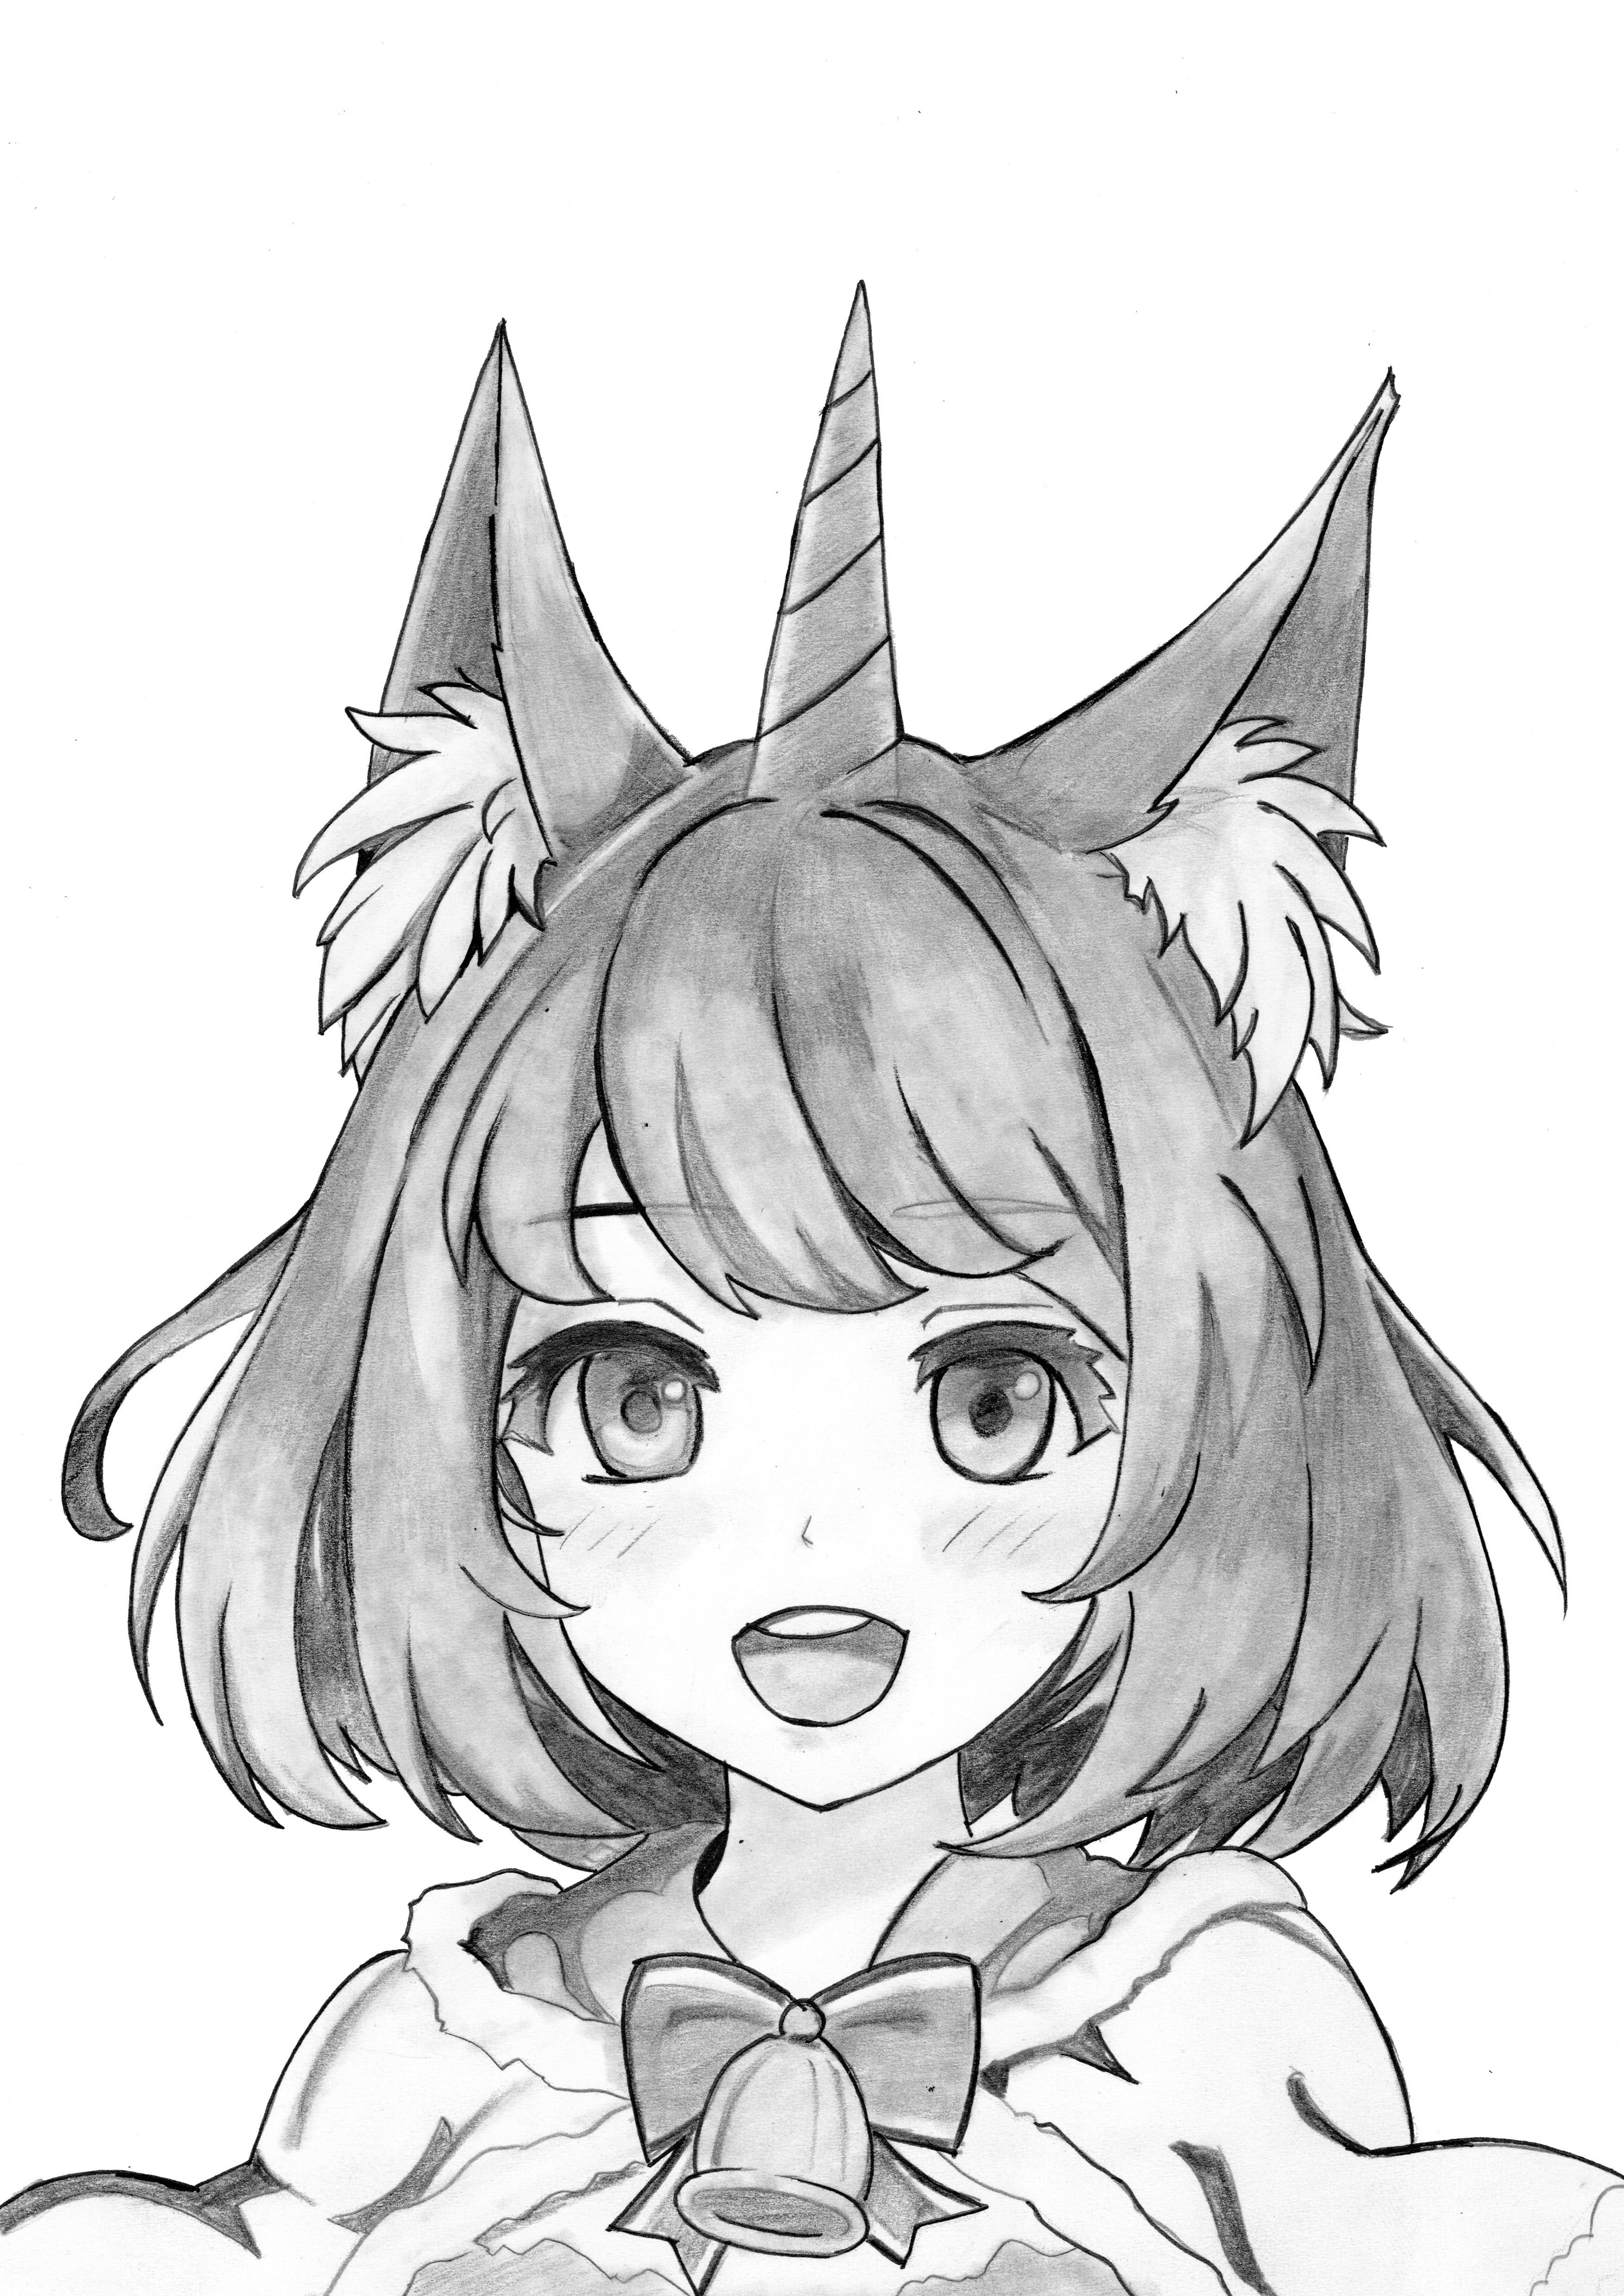 How To Draw A Cute Unicorn Girl Anime Step By Step Anime Drawings Anime Character Drawing Anime Drawings Sketches